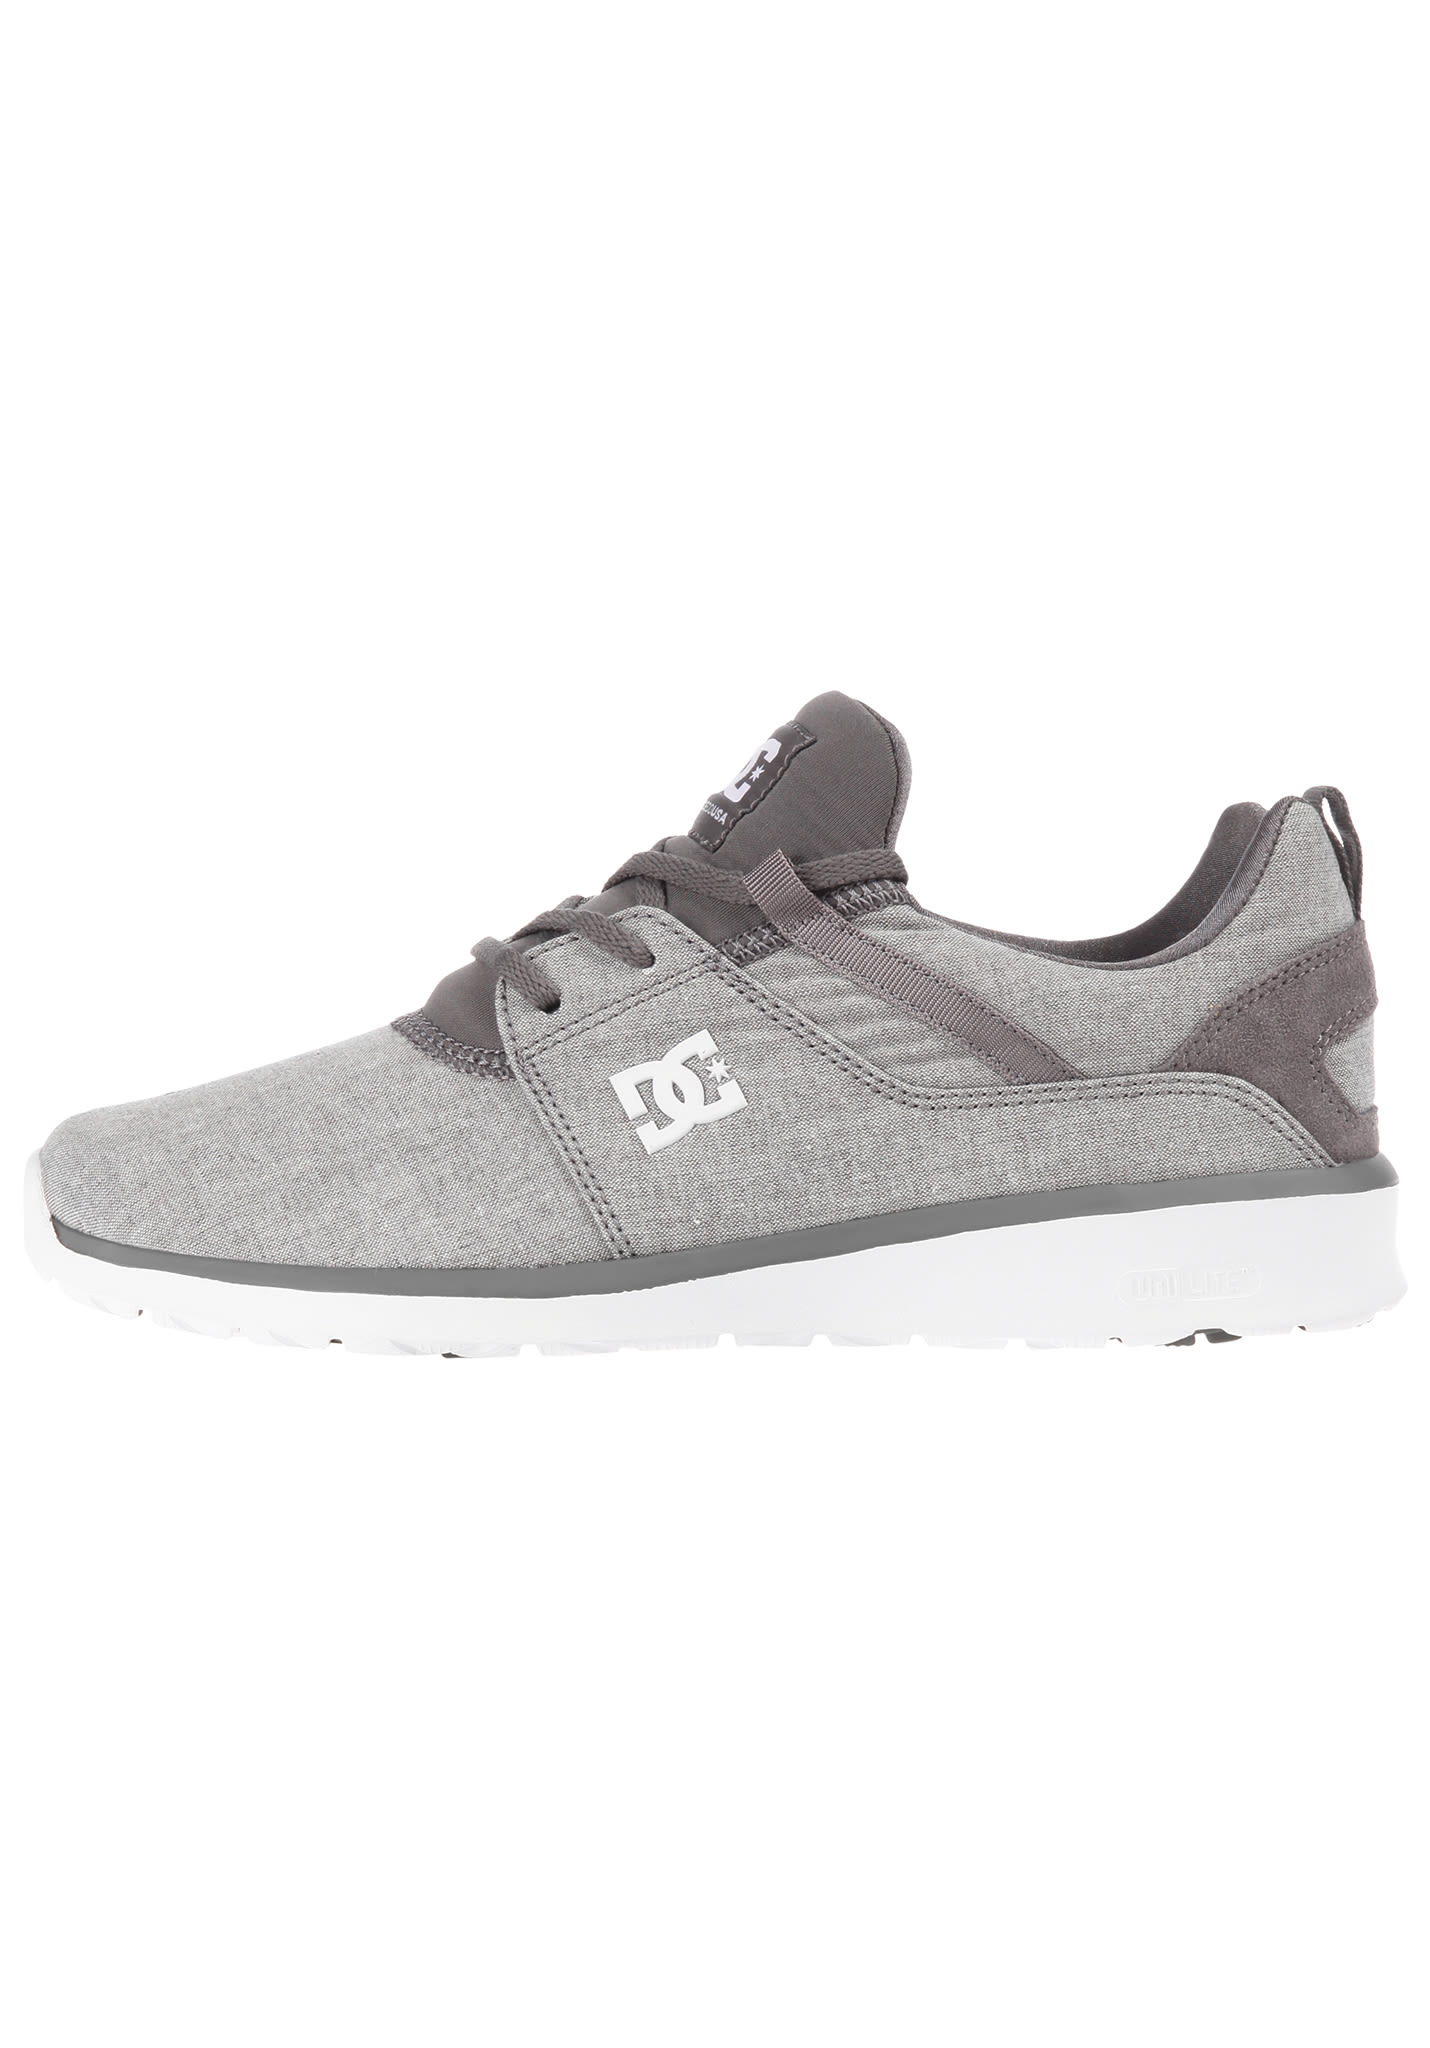 Für Planet Heathrow Sneaker Tx Grau Se Sports Herren Dc UVzpMS